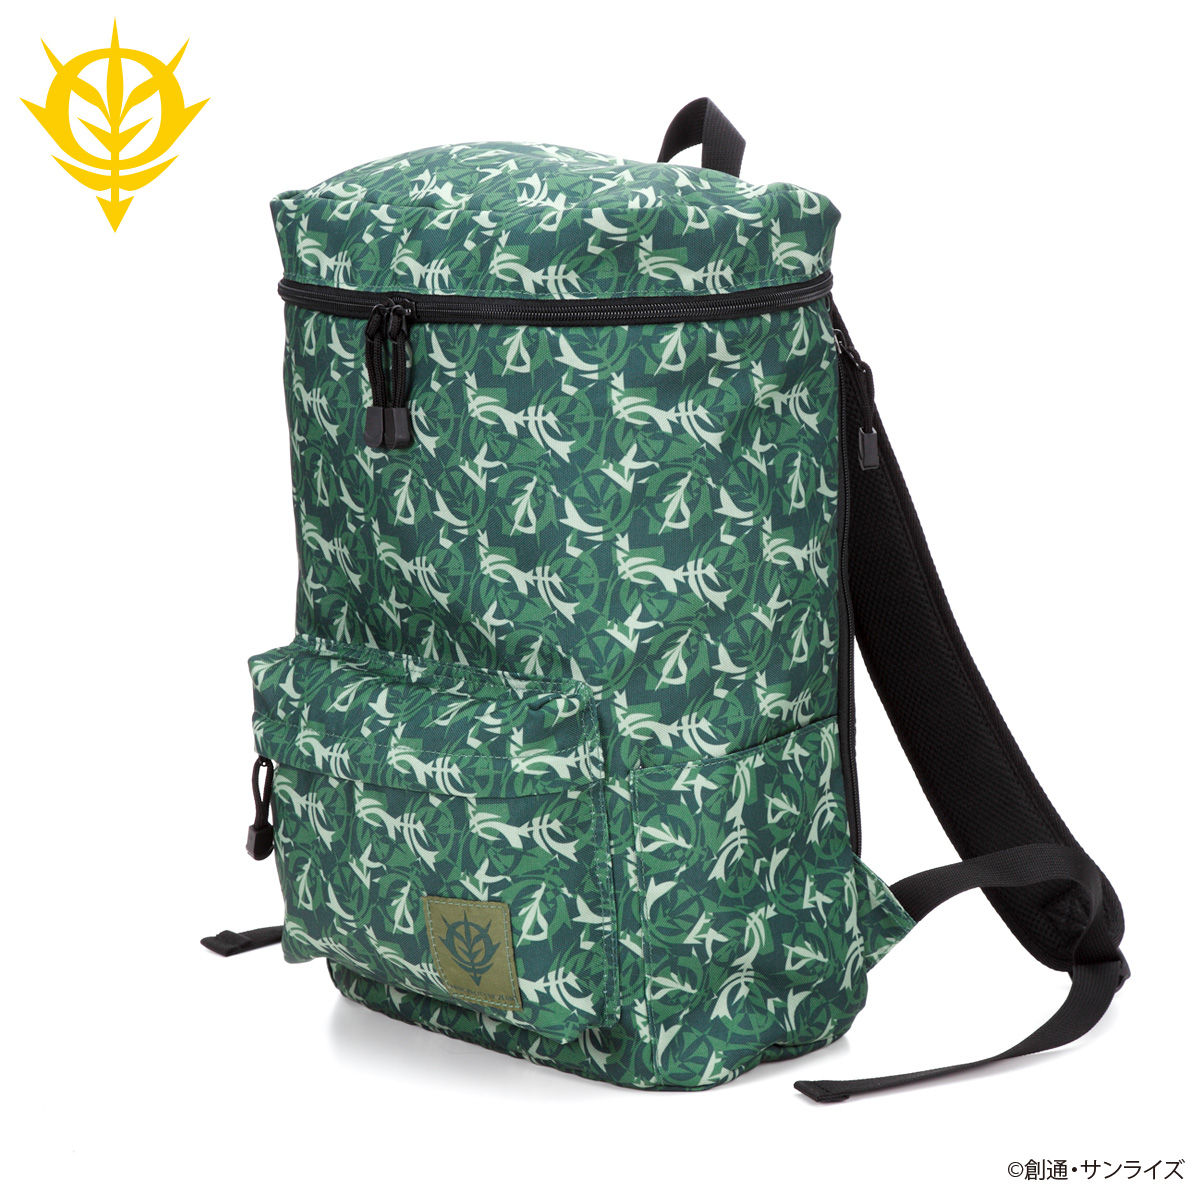 Mobile Suit Gundam Camouflage Backpack